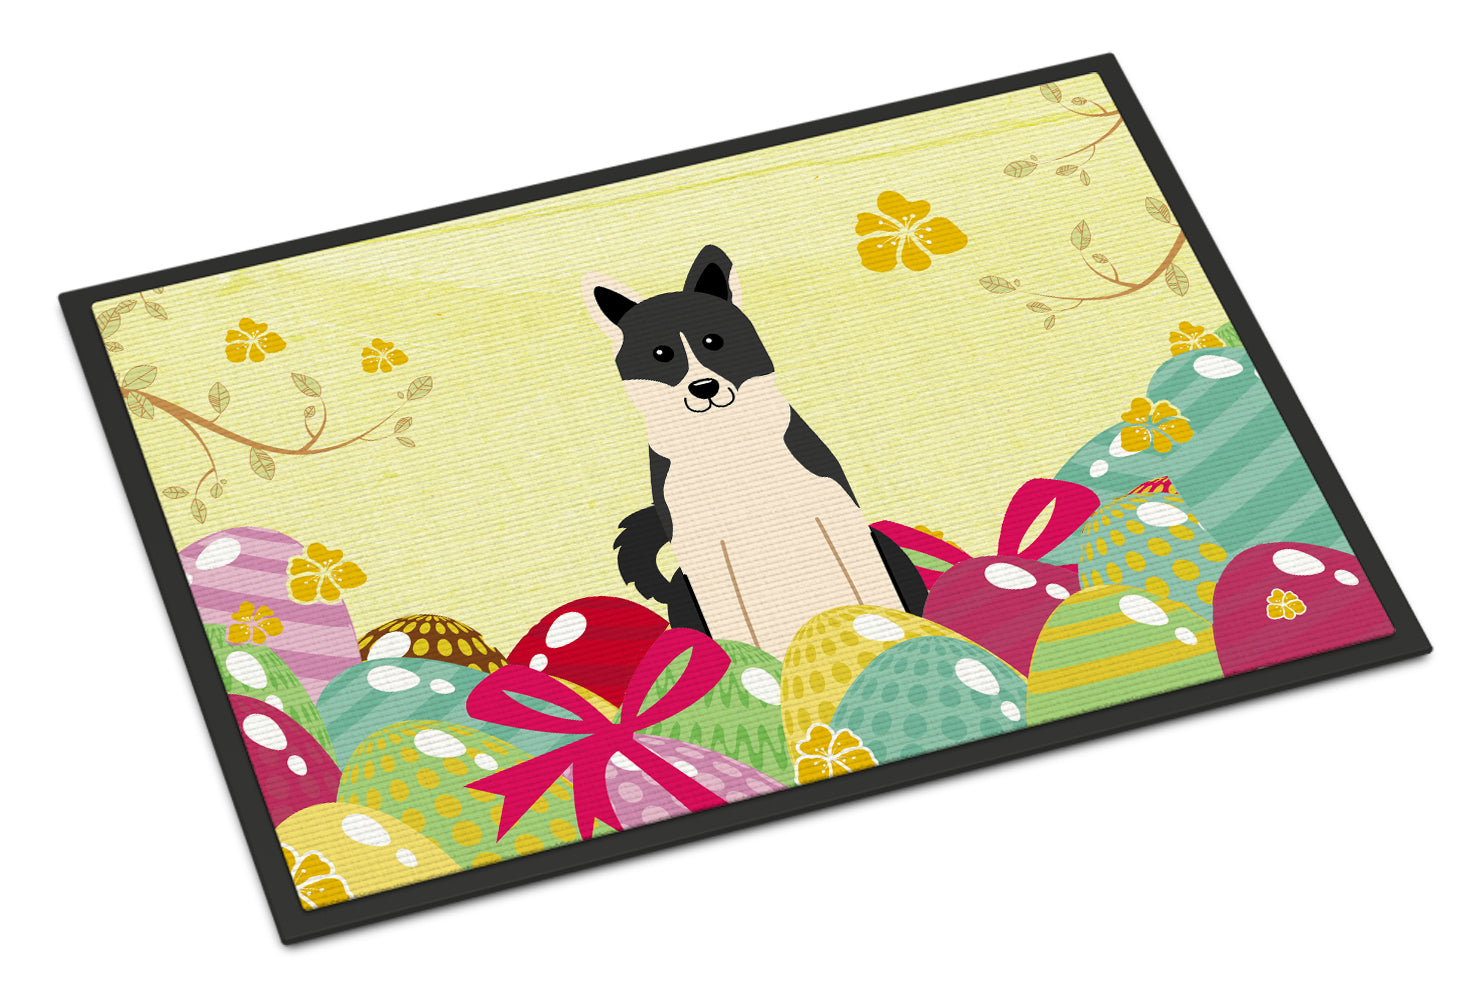 Easter Eggs Russo-European Laika Spitz Indoor or Outdoor Mat 18x27 BB6029MAT by Caroline's Treasures